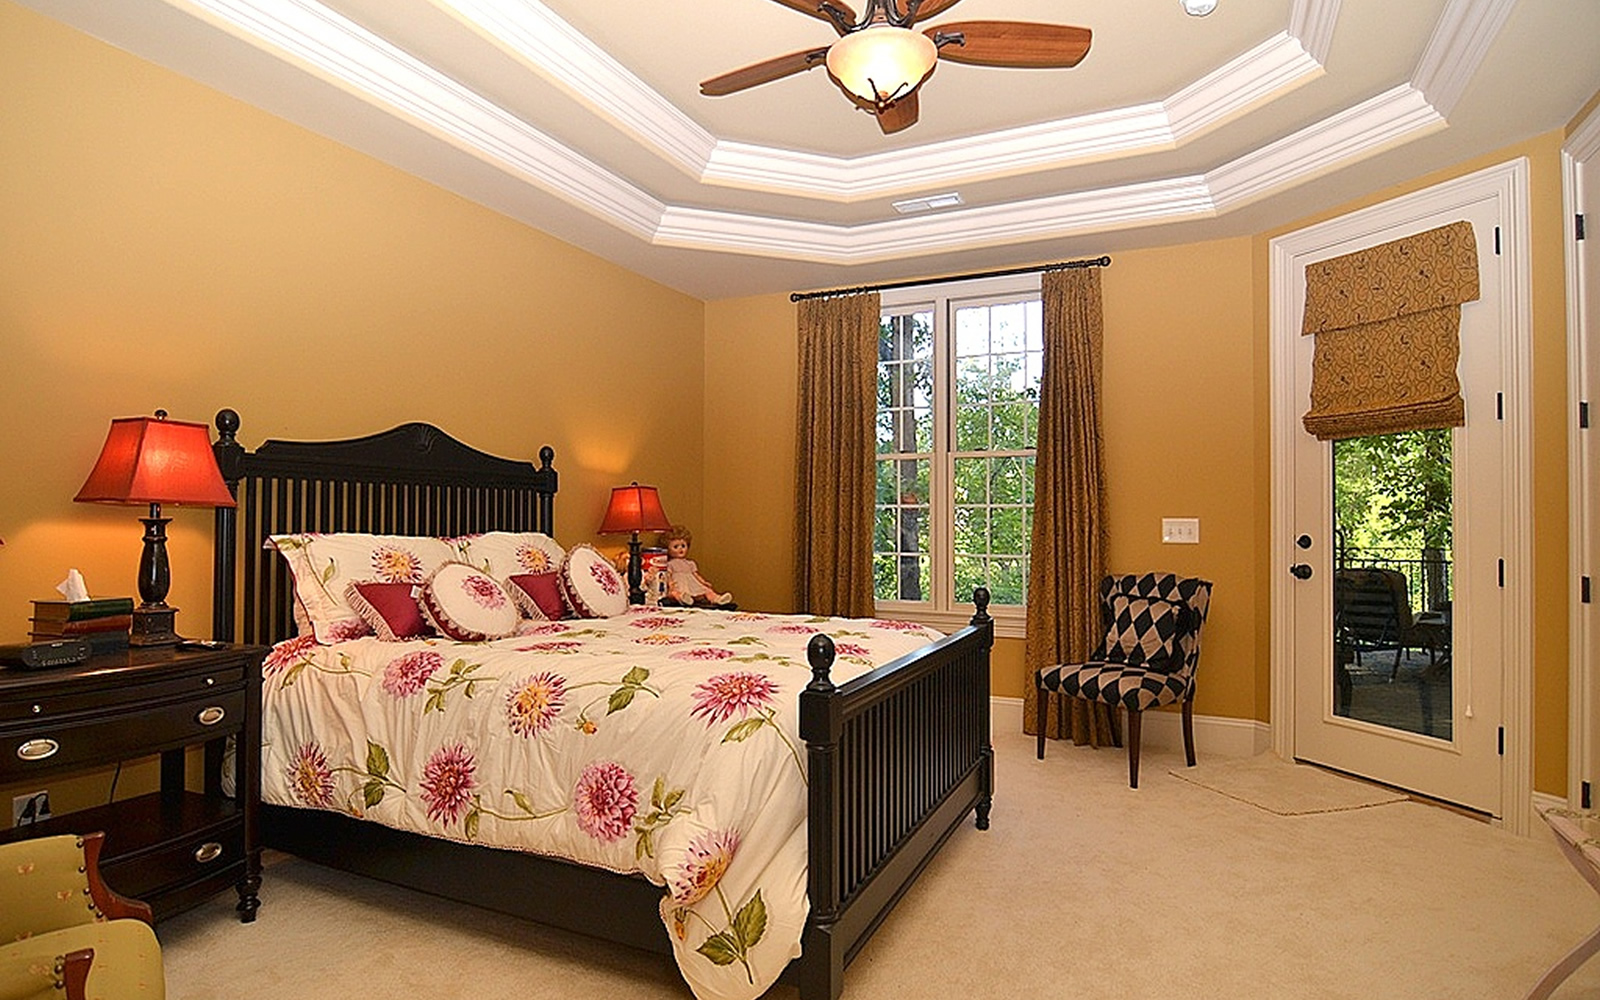 1317 Dunleigh Drive Bedroom